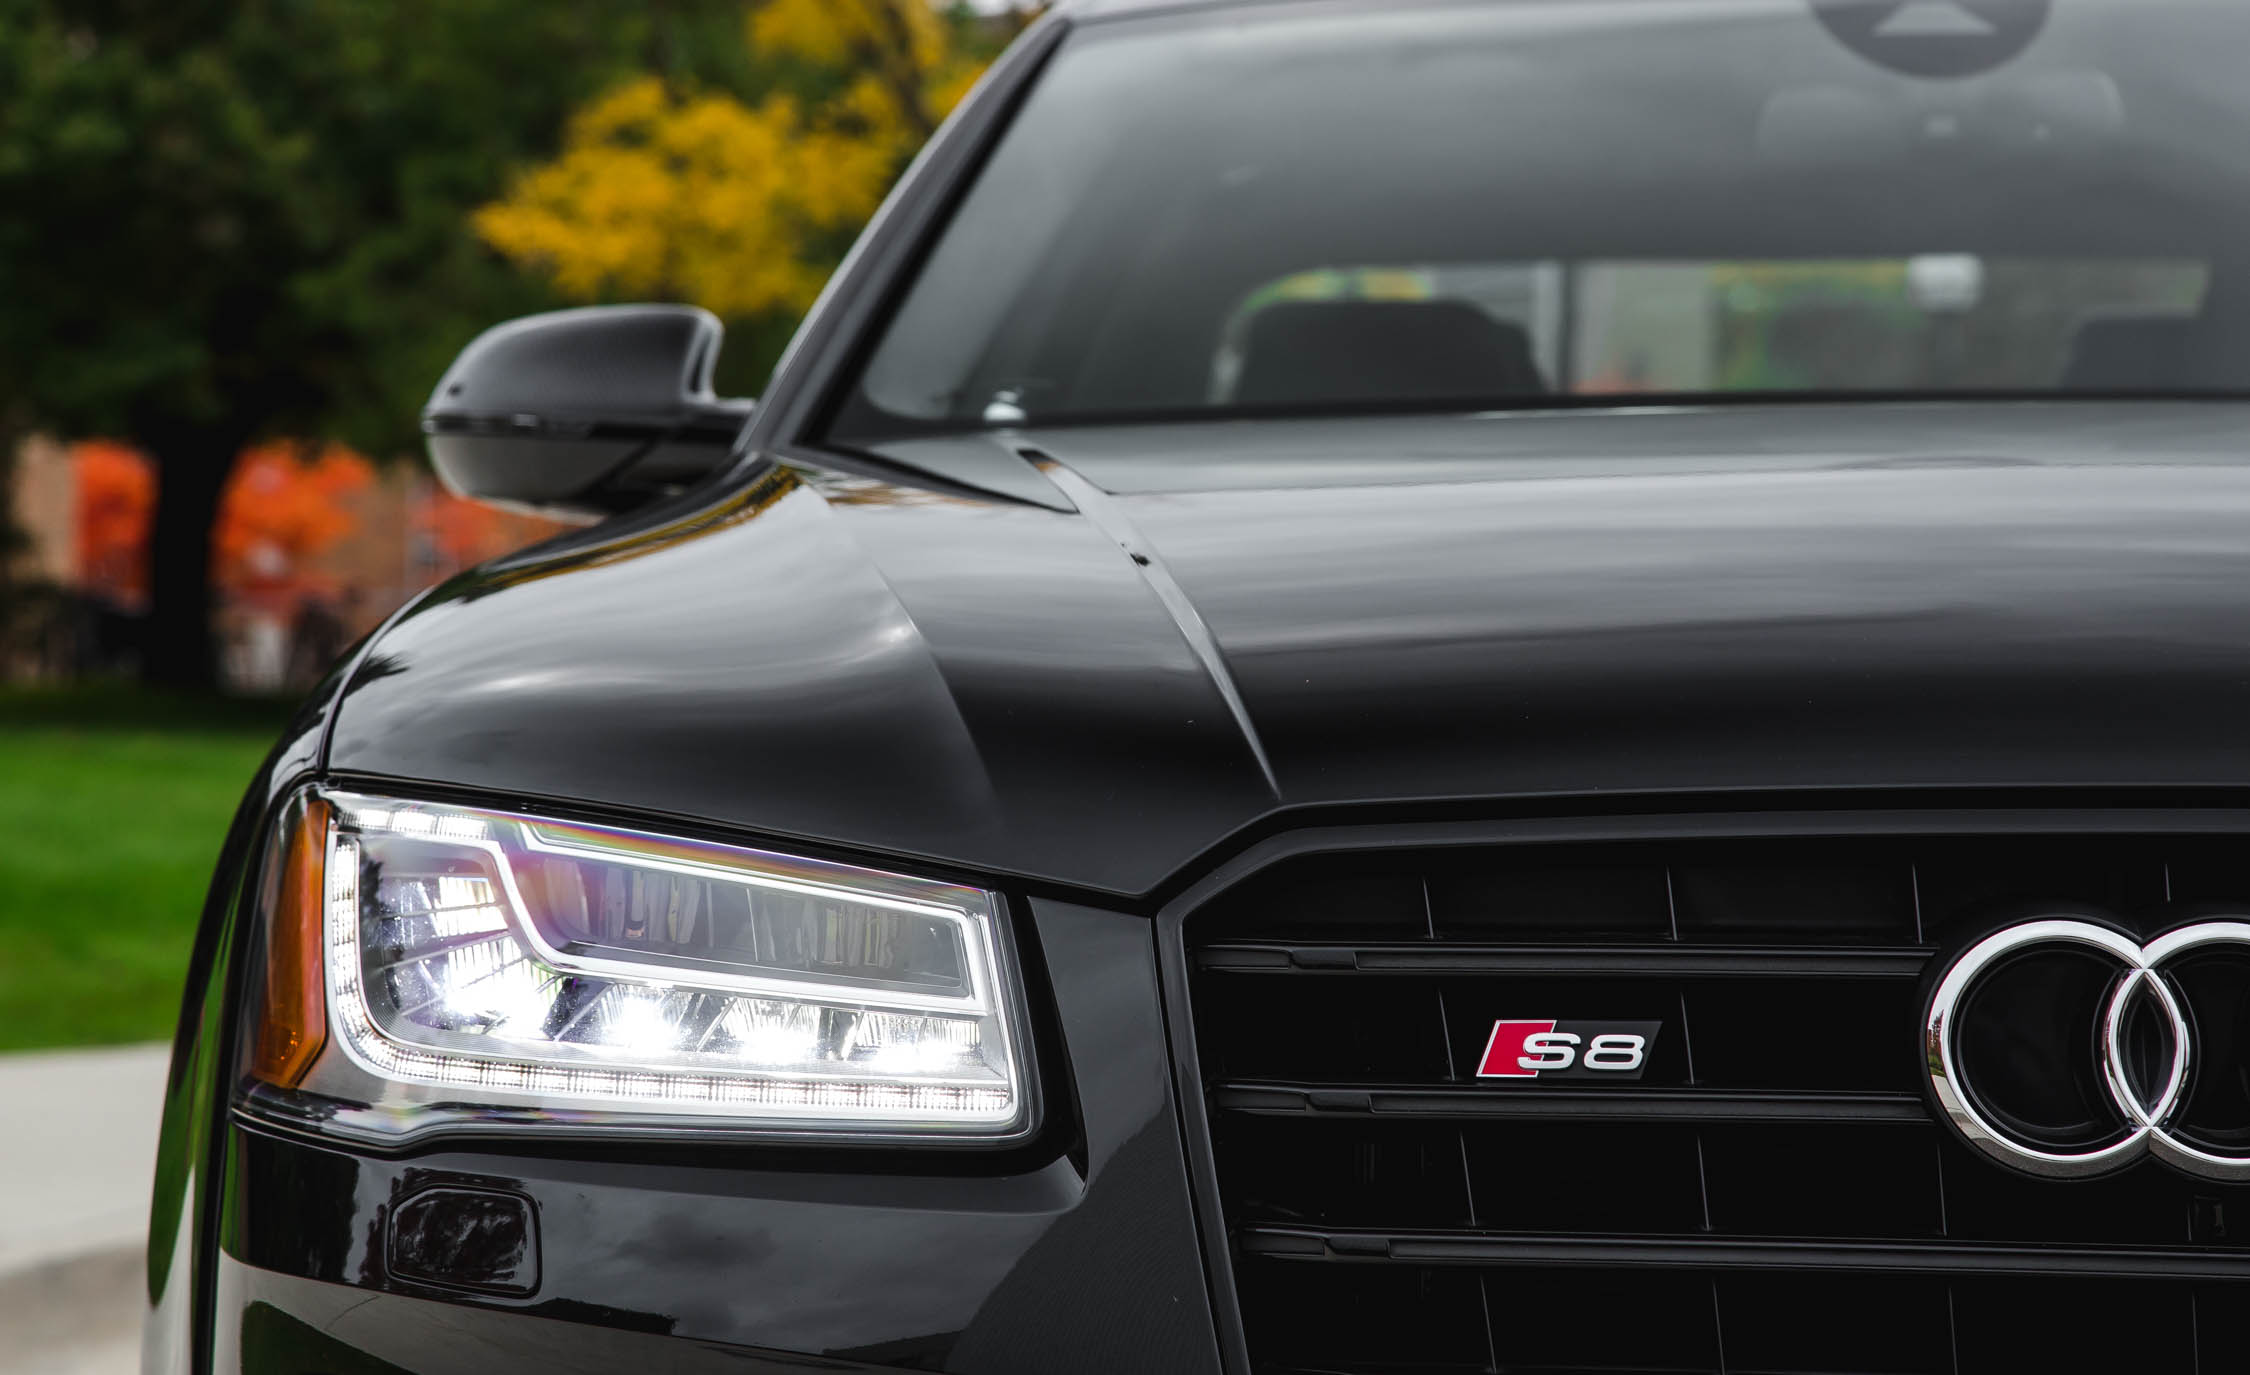 2017 Audi S8 Plus Exterior View Headlight (Photo 8 of 36)